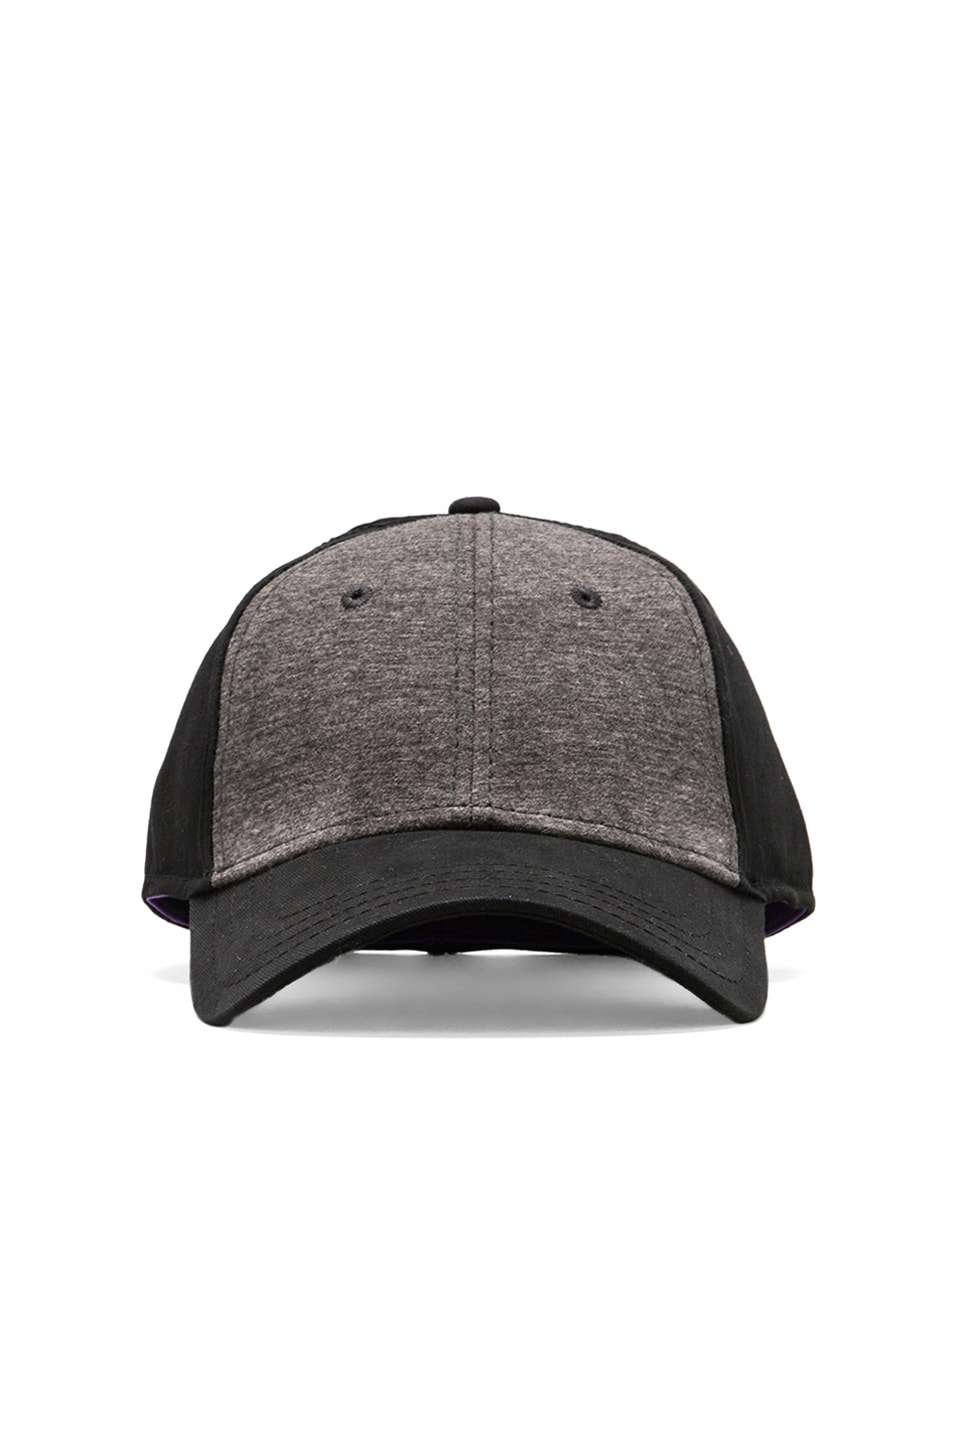 Jersey Knit Cap by Gents Co.